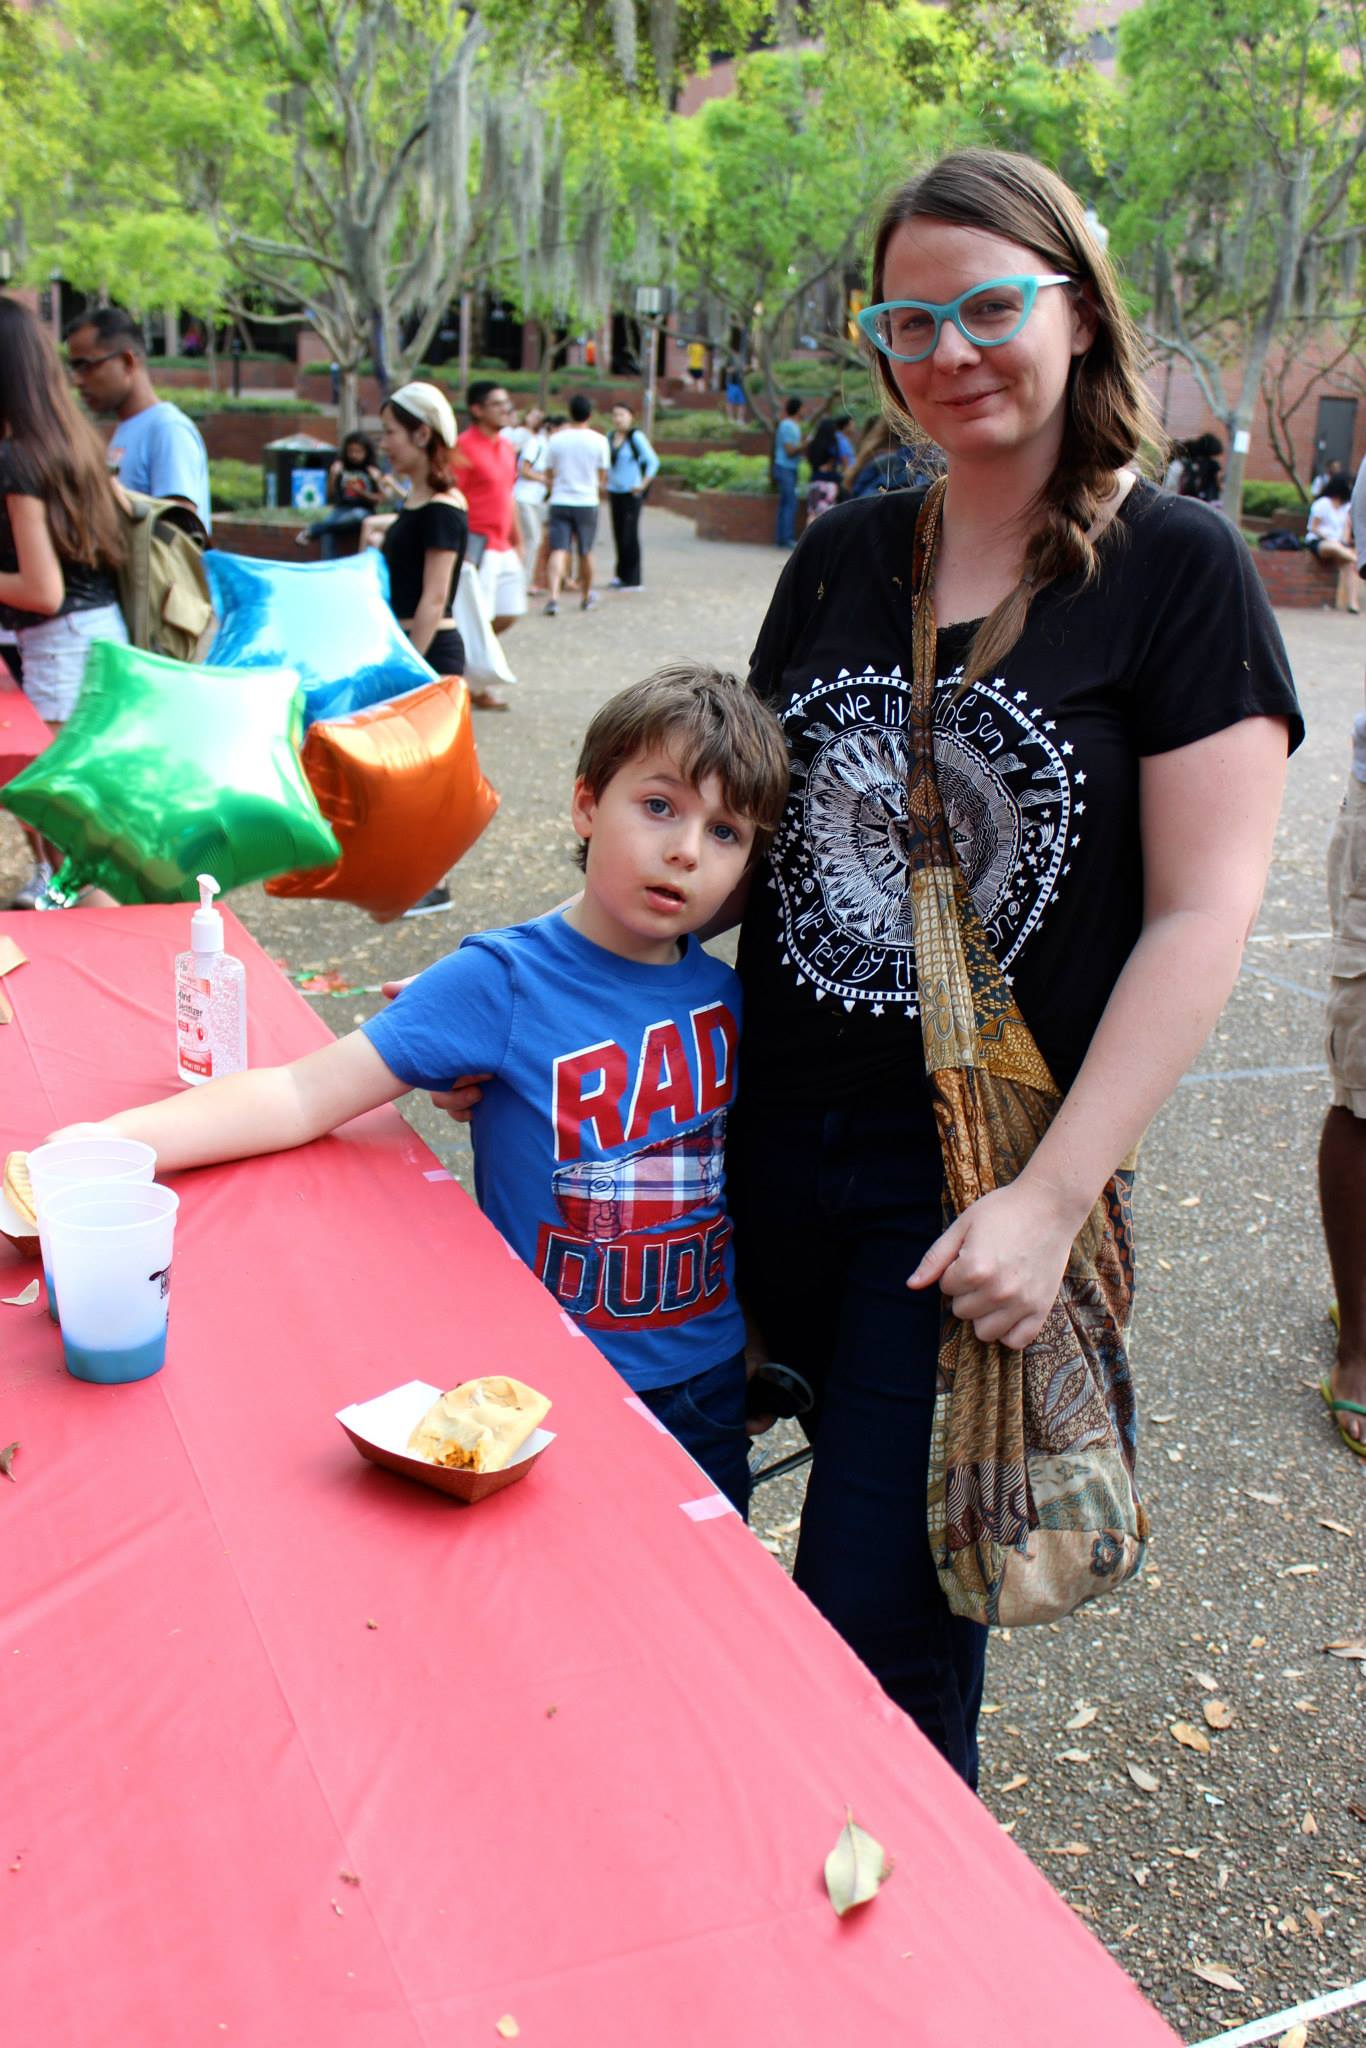 Kirsten Hecht at an event on campus with her son